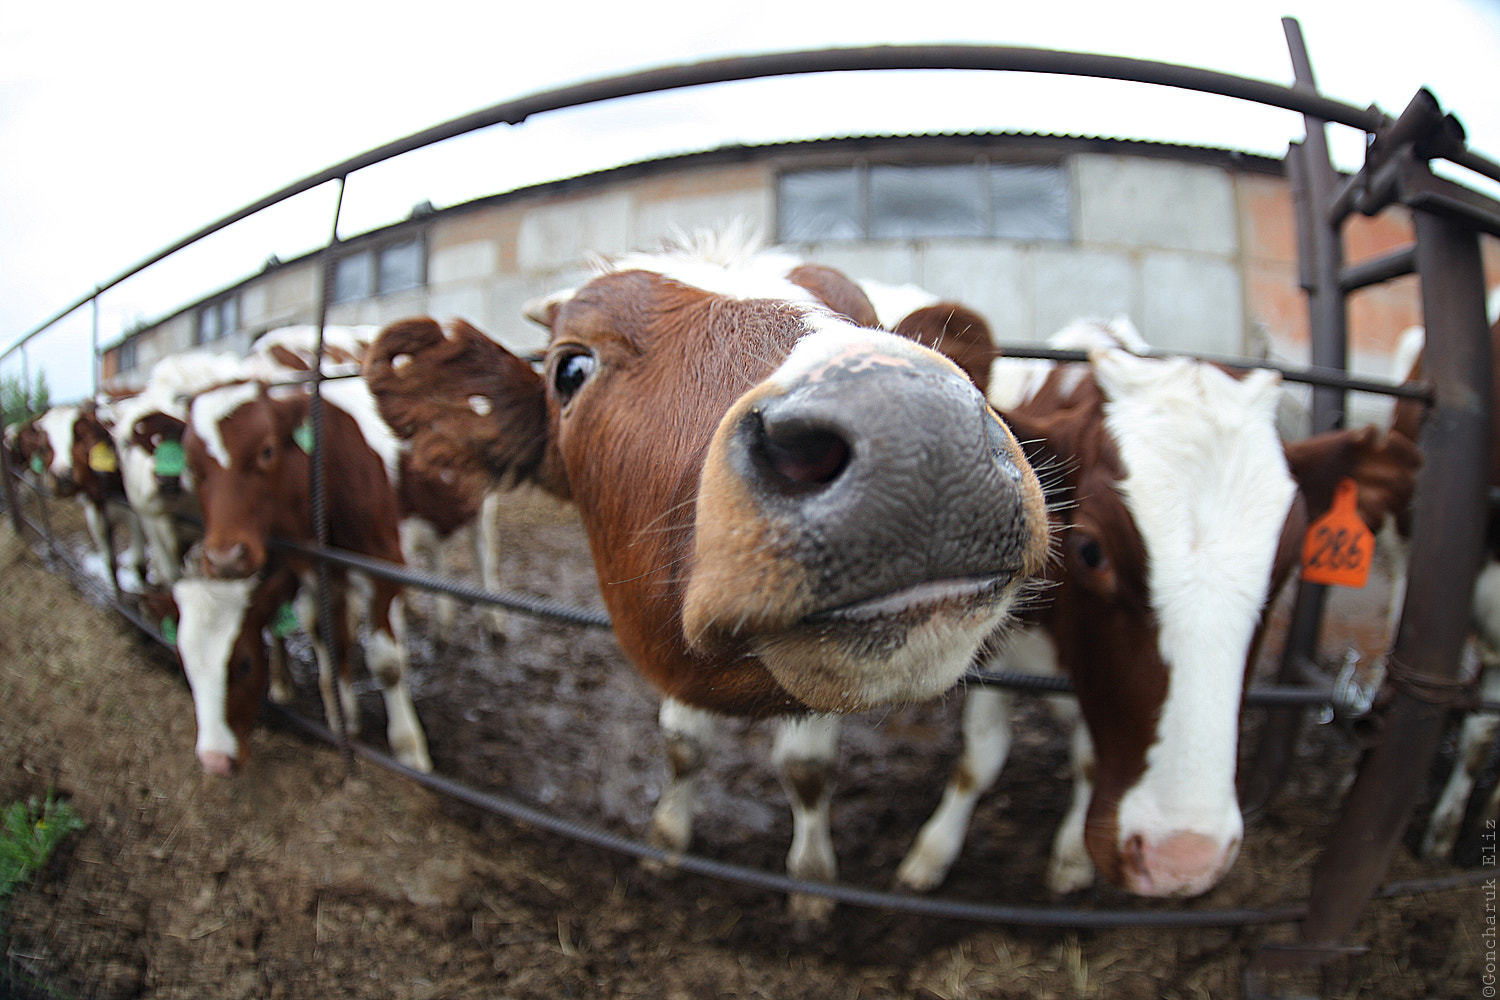 Photograph Cows by Elizabeth Goncharuk on 500px